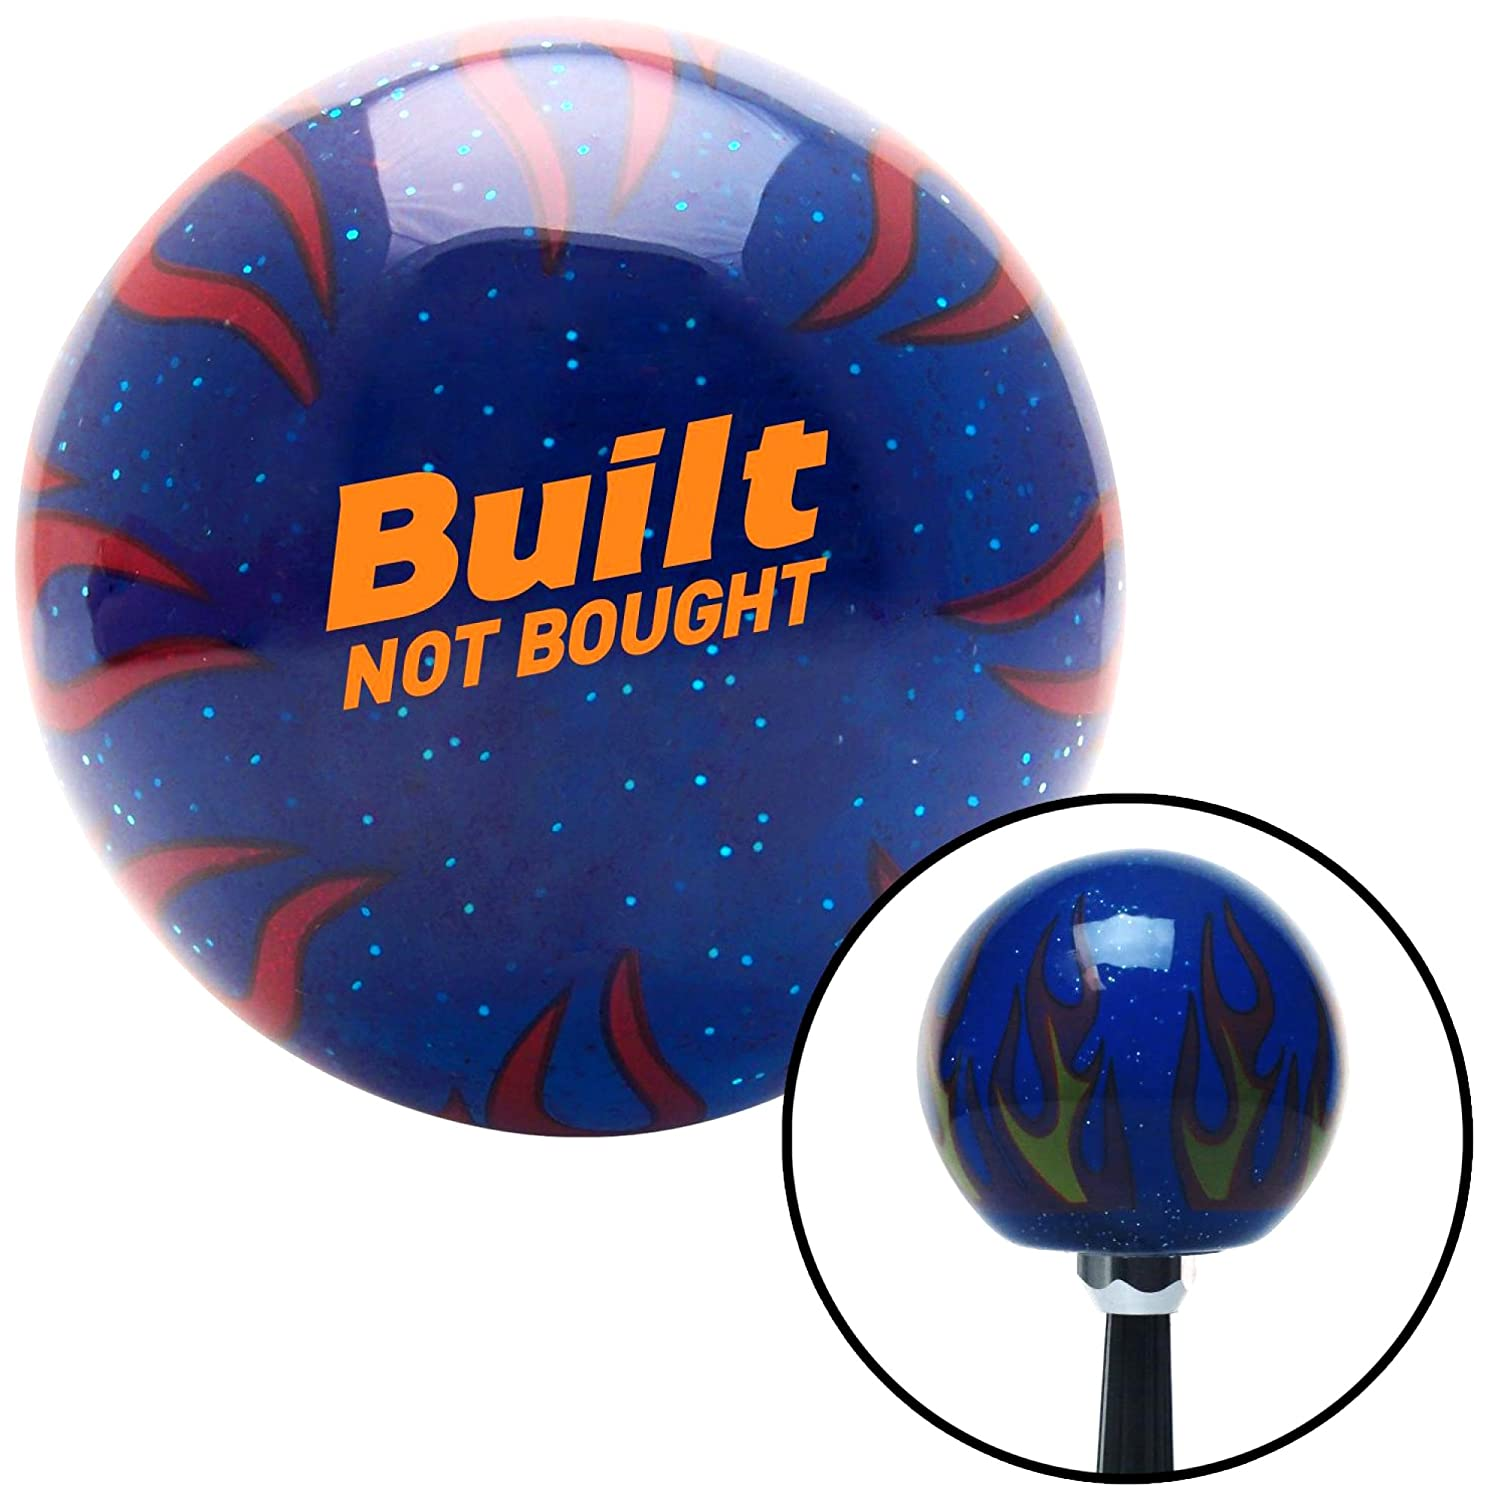 American Shifter 327768 Yellow Built Not Bought Simple Blue Flame Metal Flake Shift Knob with M16 x 1.5 Insert